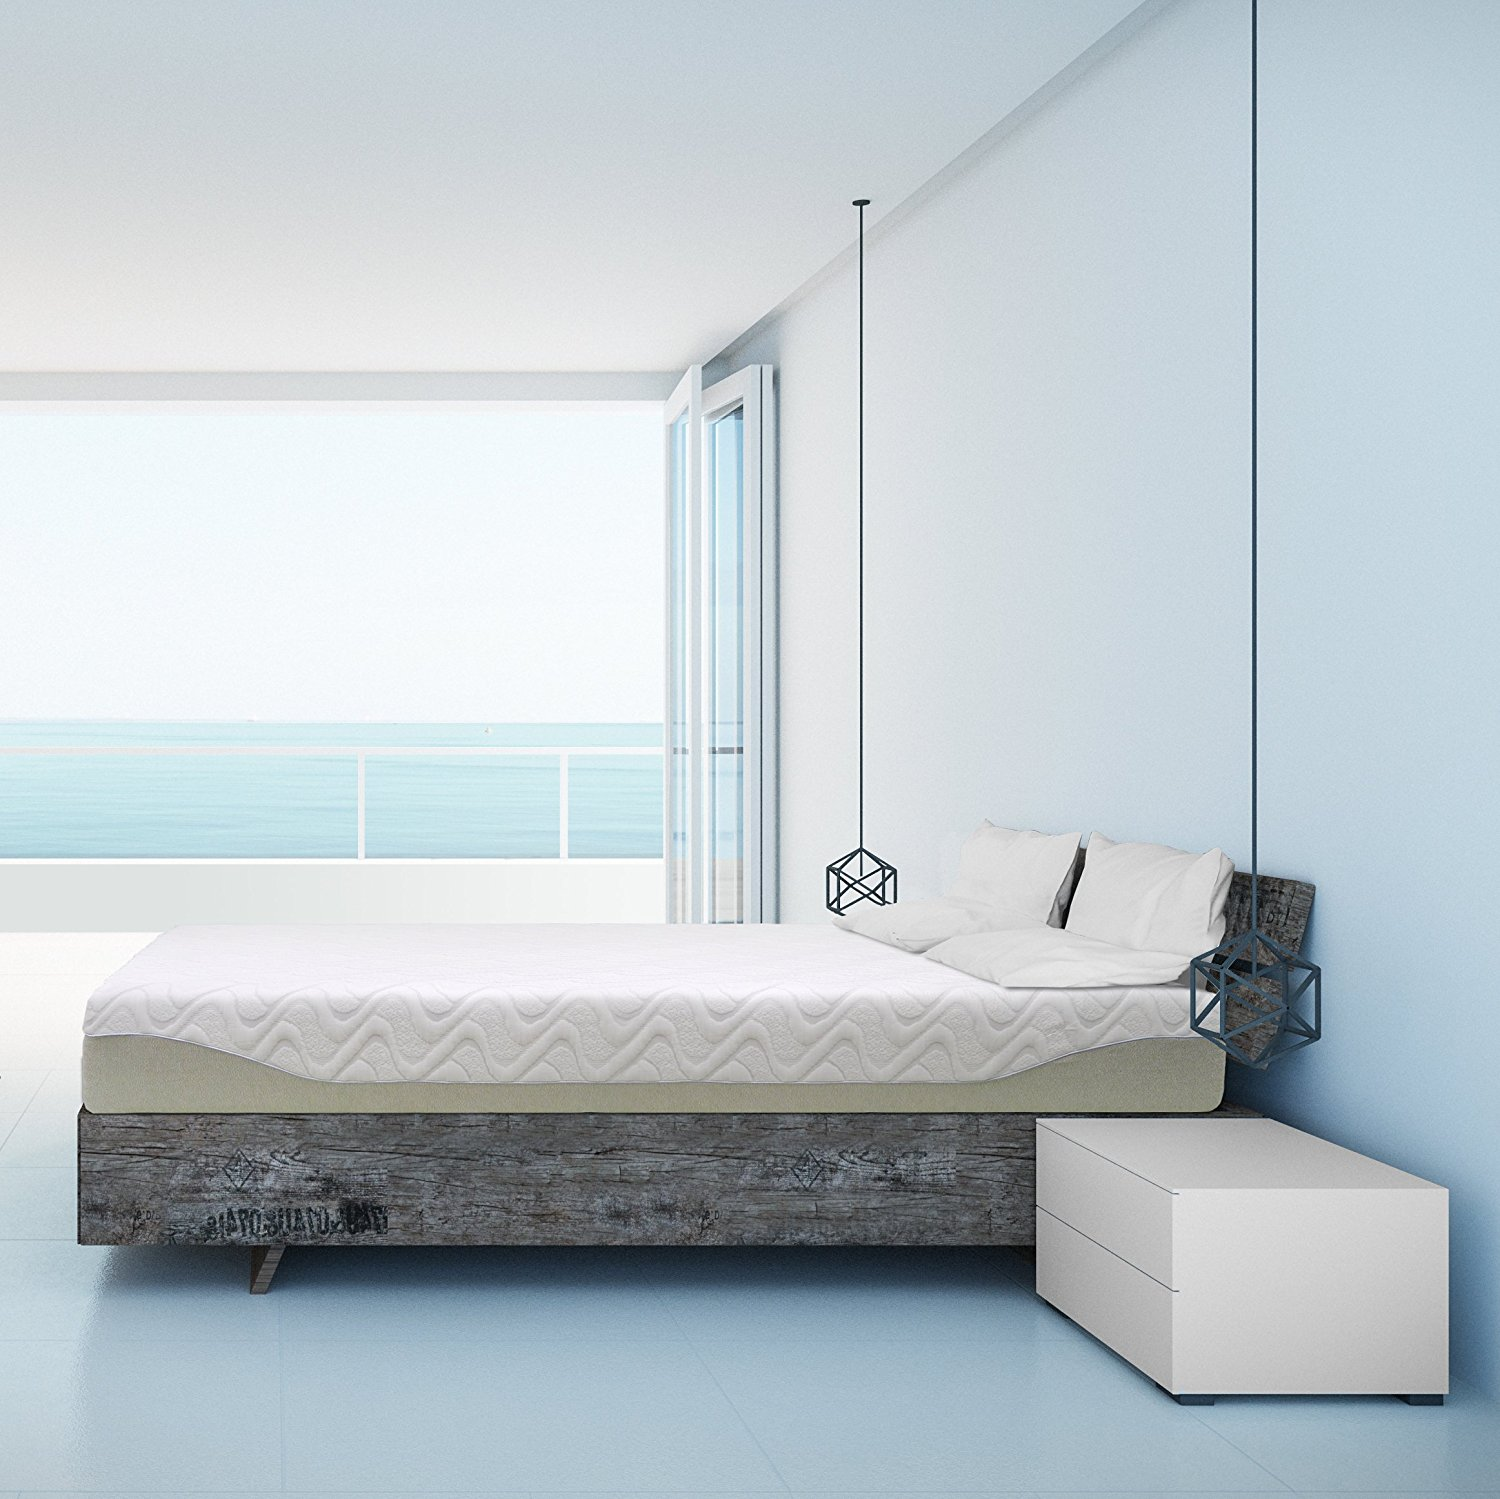 Best Price Mattress 9 Inch Gel Memory Foam Mattress